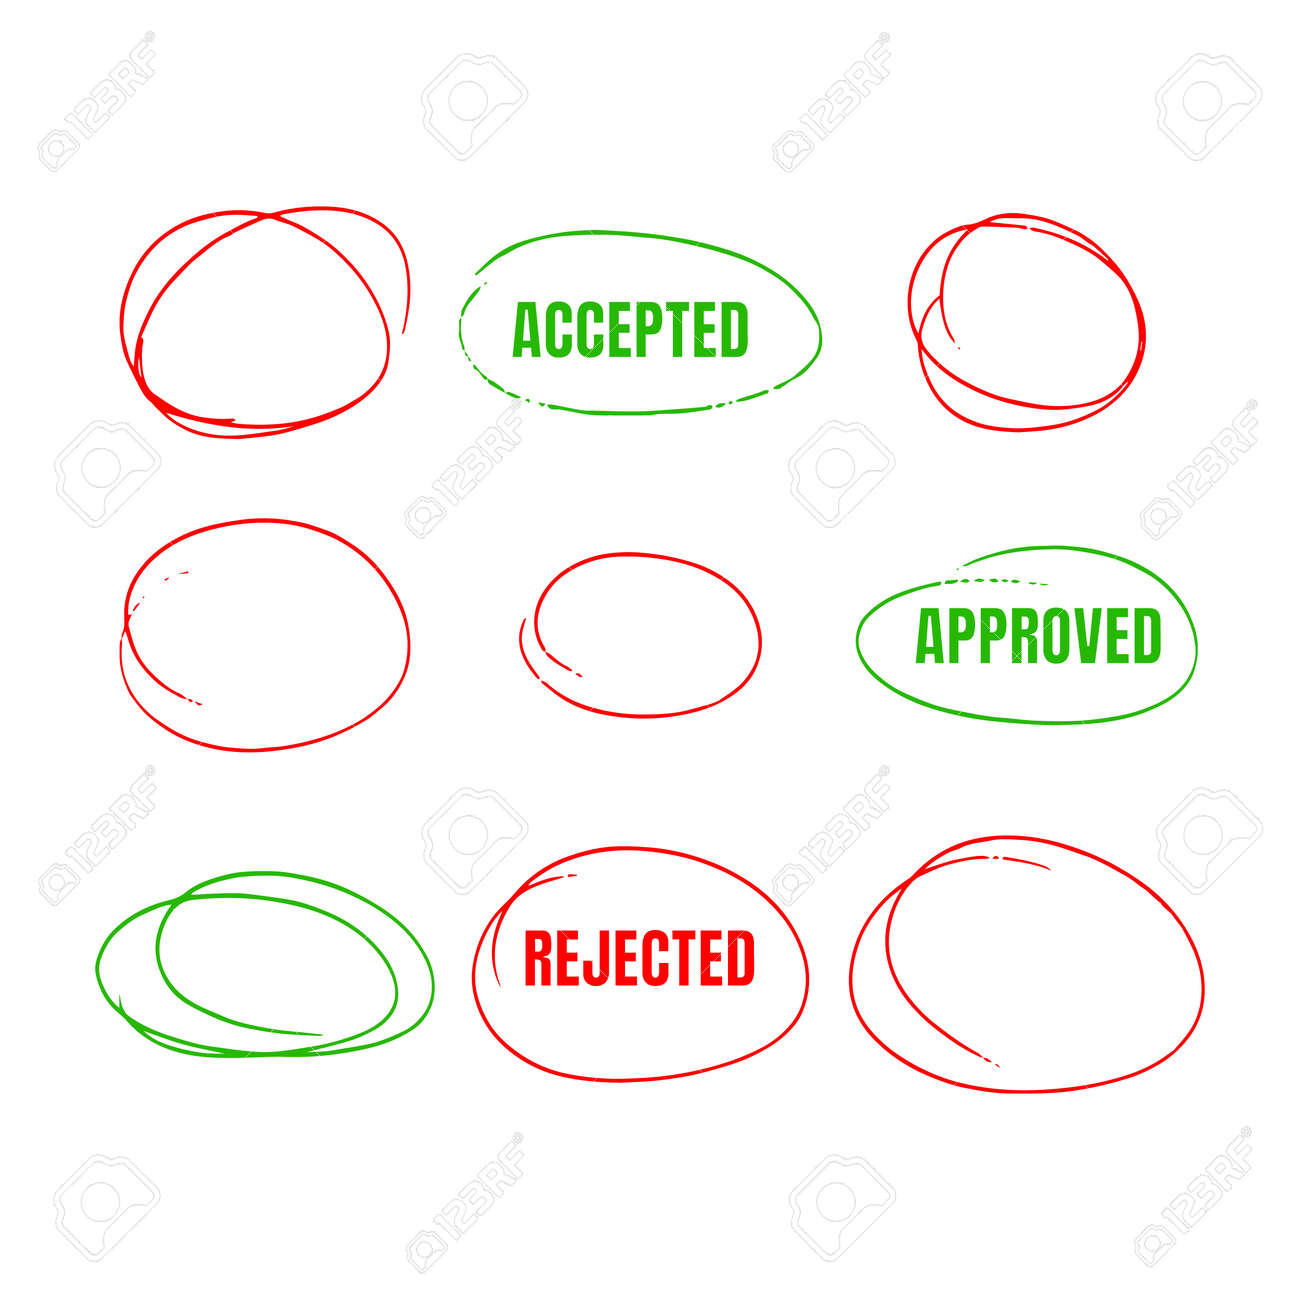 Set Of Red Hand Drawn Circles, marks for choice text or object selection - 171118200